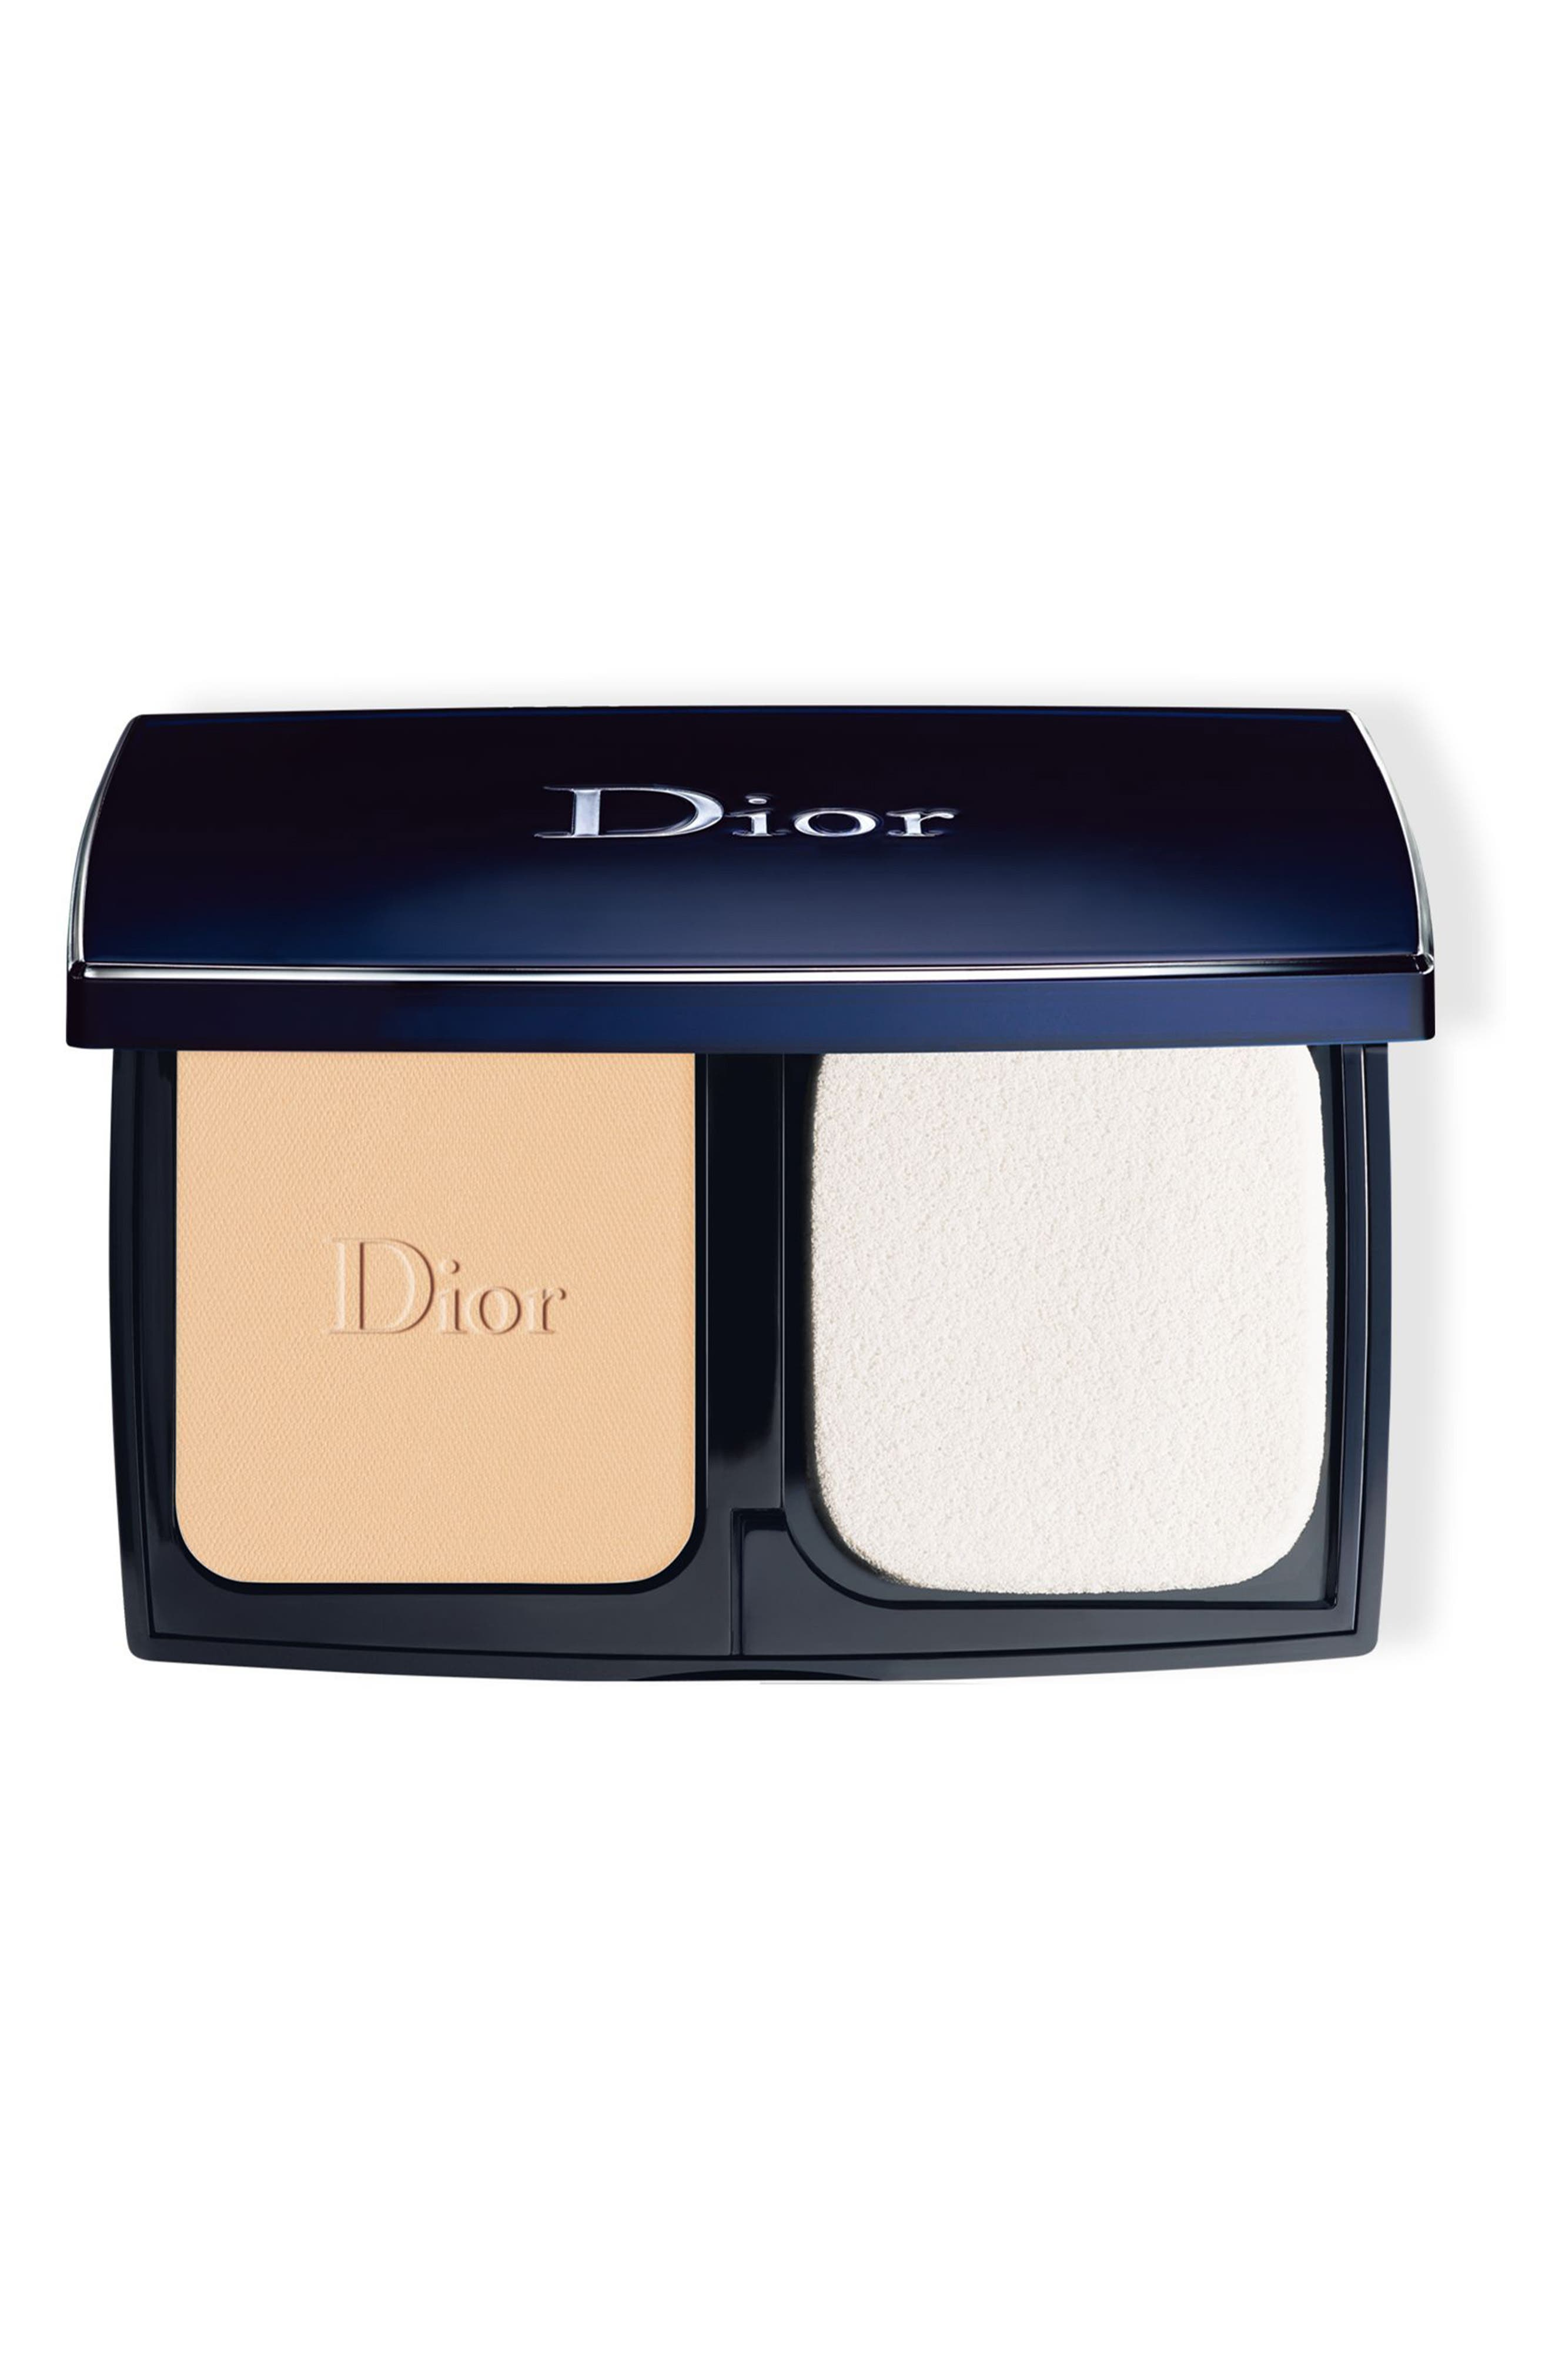 Main Image - Dior Diorskin Forever Flawless Perfection Fusion Wear Compact Foundation SPF 25